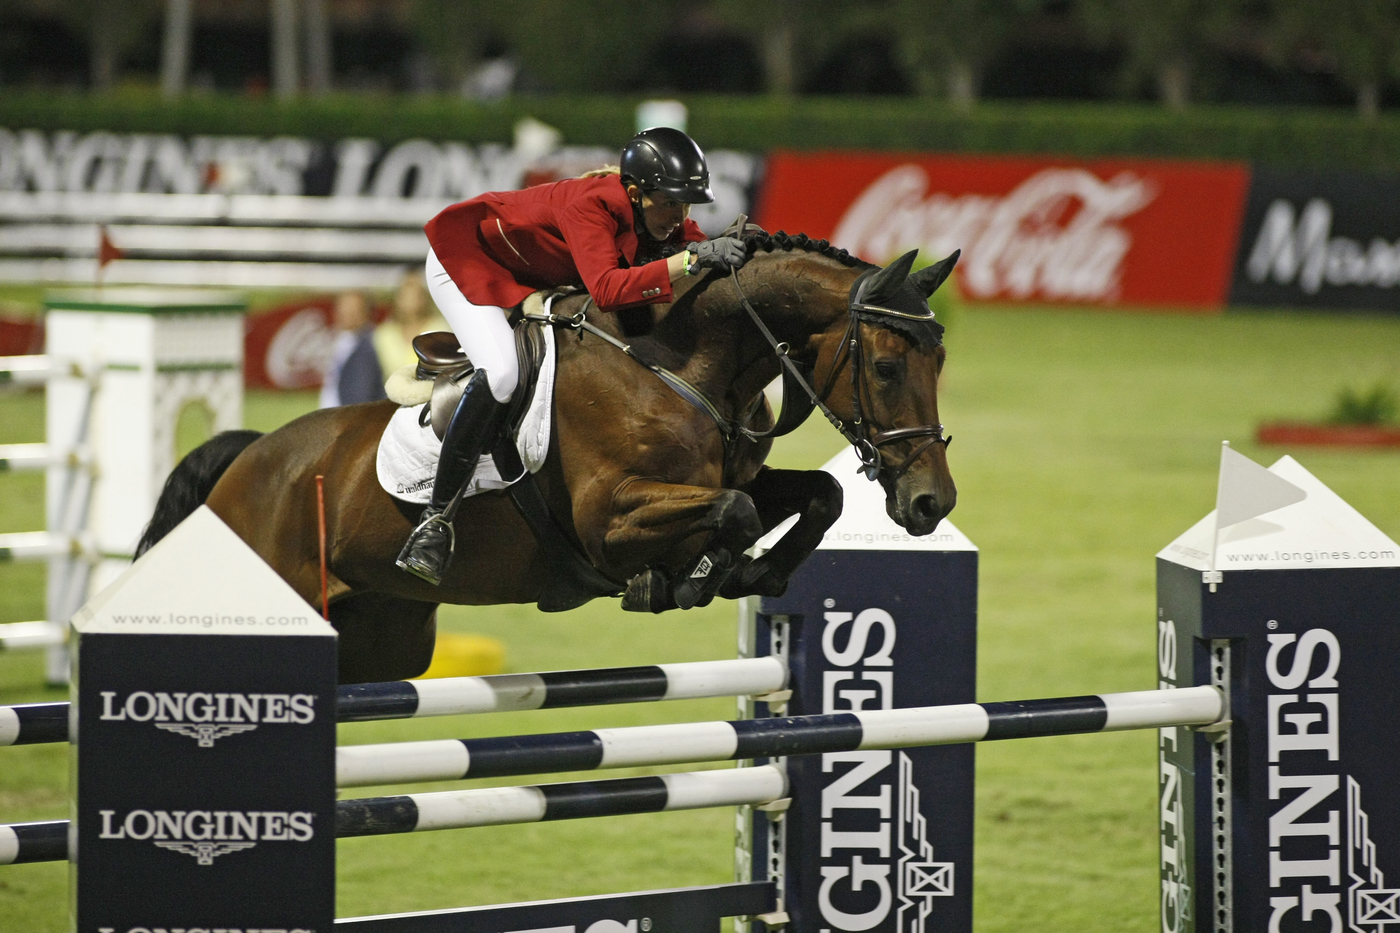 Longines Show Jumping Event: Longines and equestrian sports: elegance and precision in the Bird's Nest 5